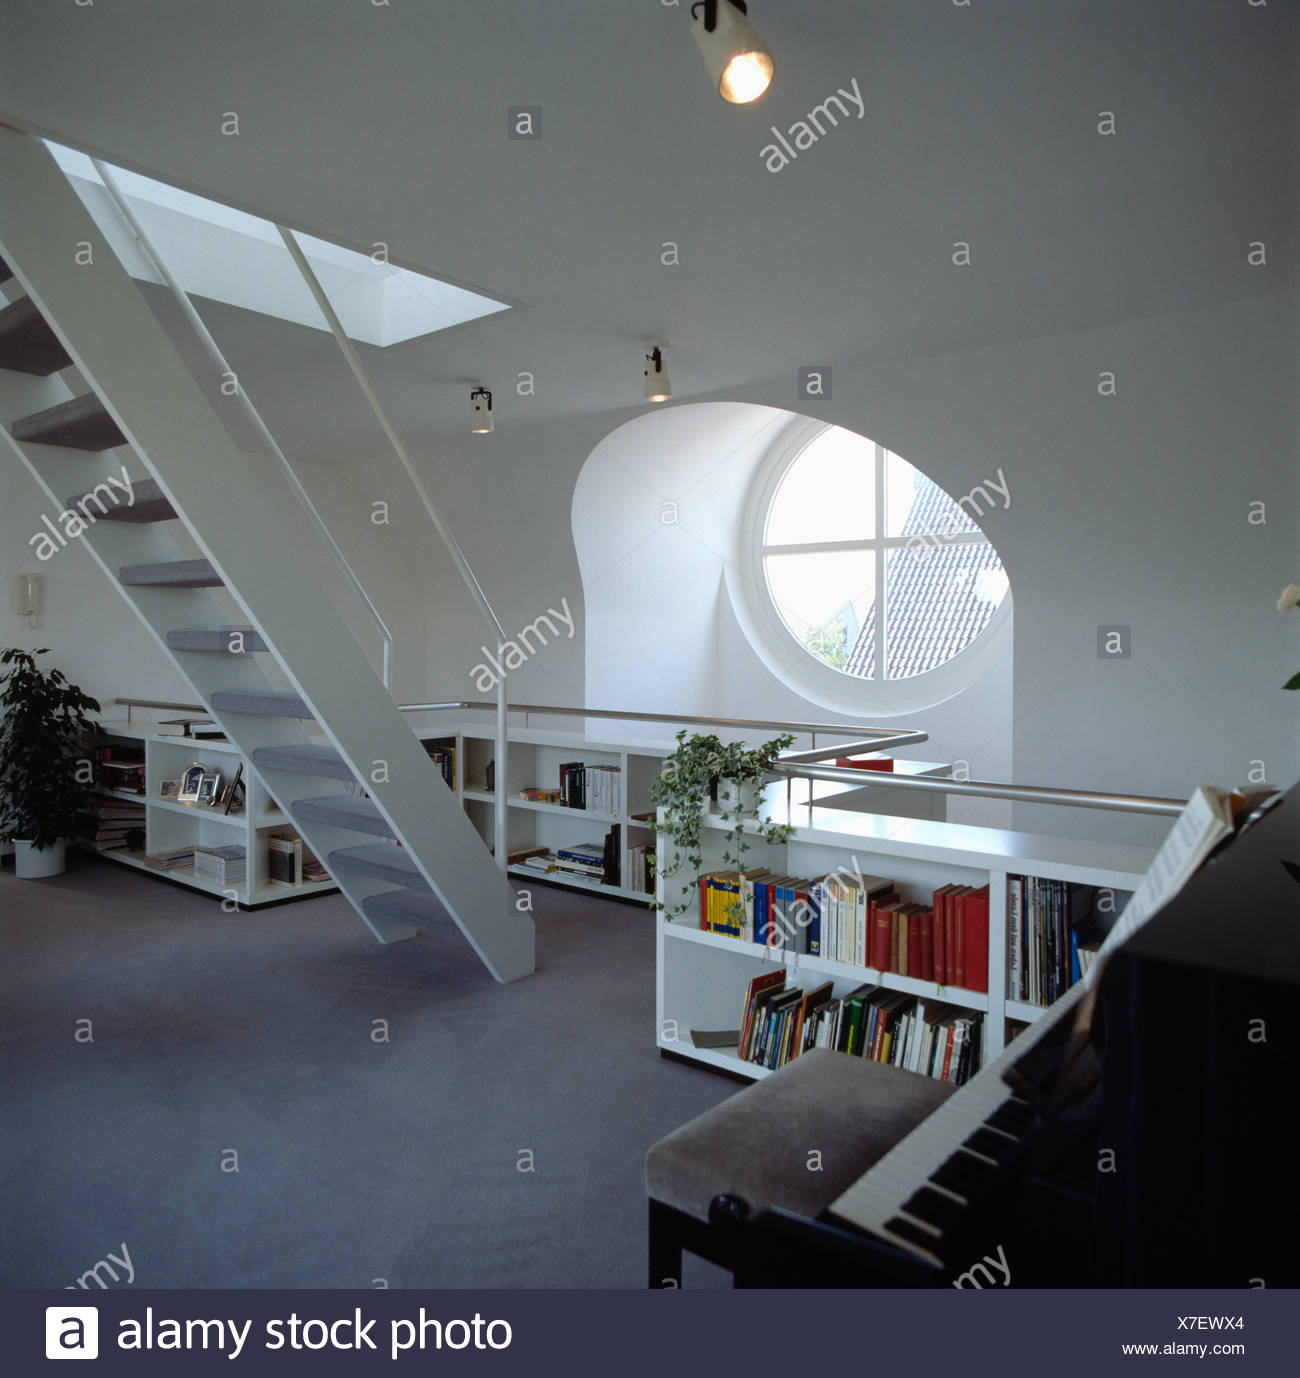 Circular Window Above Low Bookshelves In Modern White Loft Conversion  Living Room With Piano And Staircase